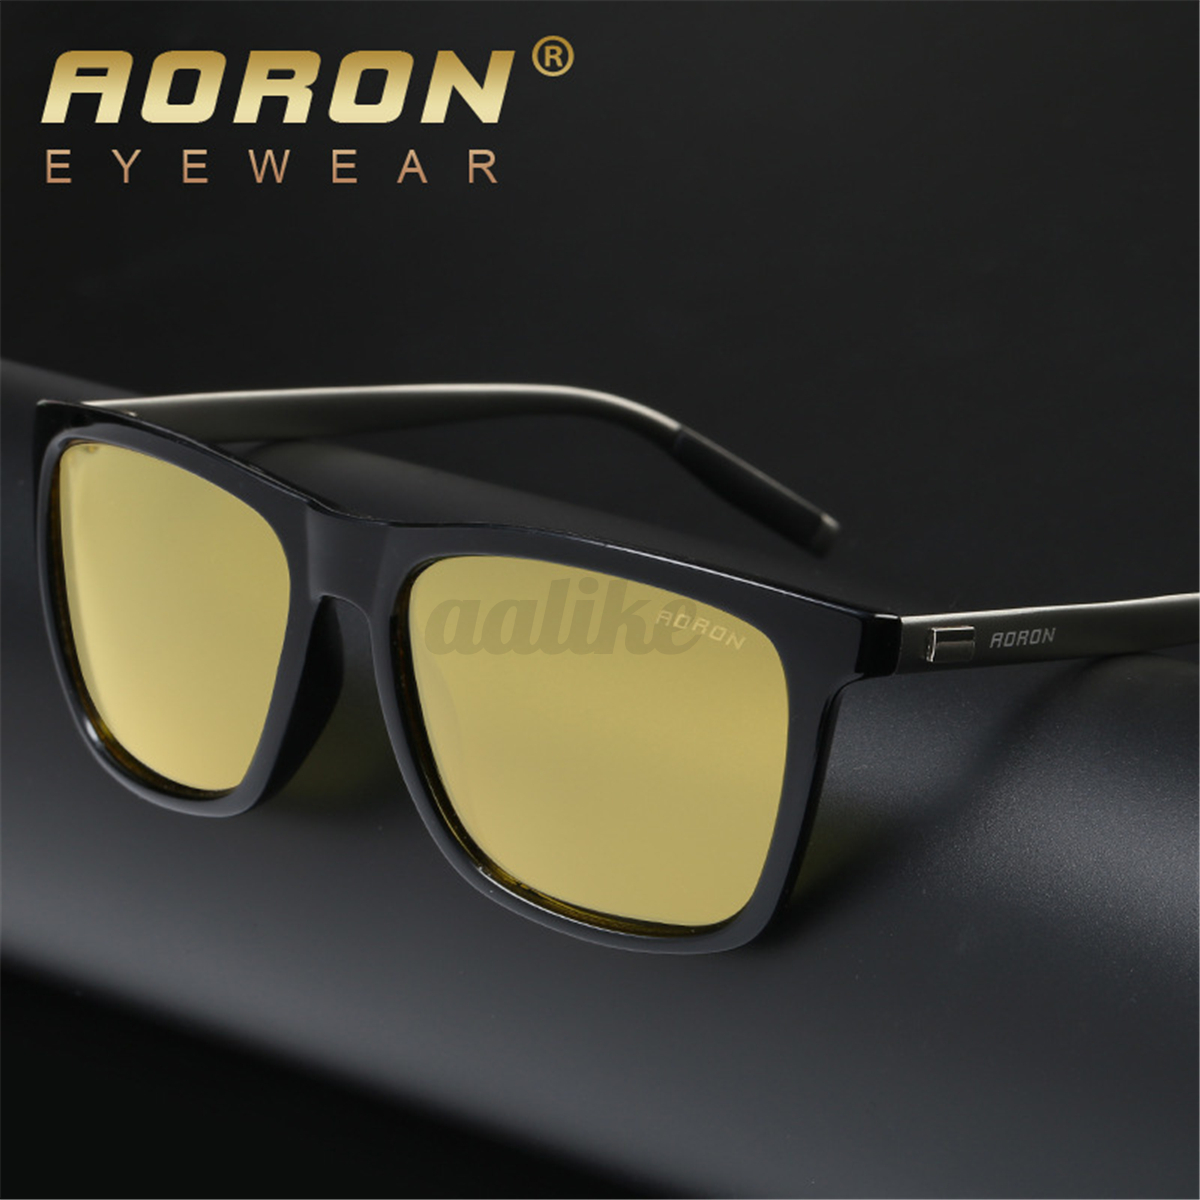 84b3e6c02d6d83 Image is loading Polarized-Aluminium-Men-Driving-Sunglasses-Glasses-Night- Vision-